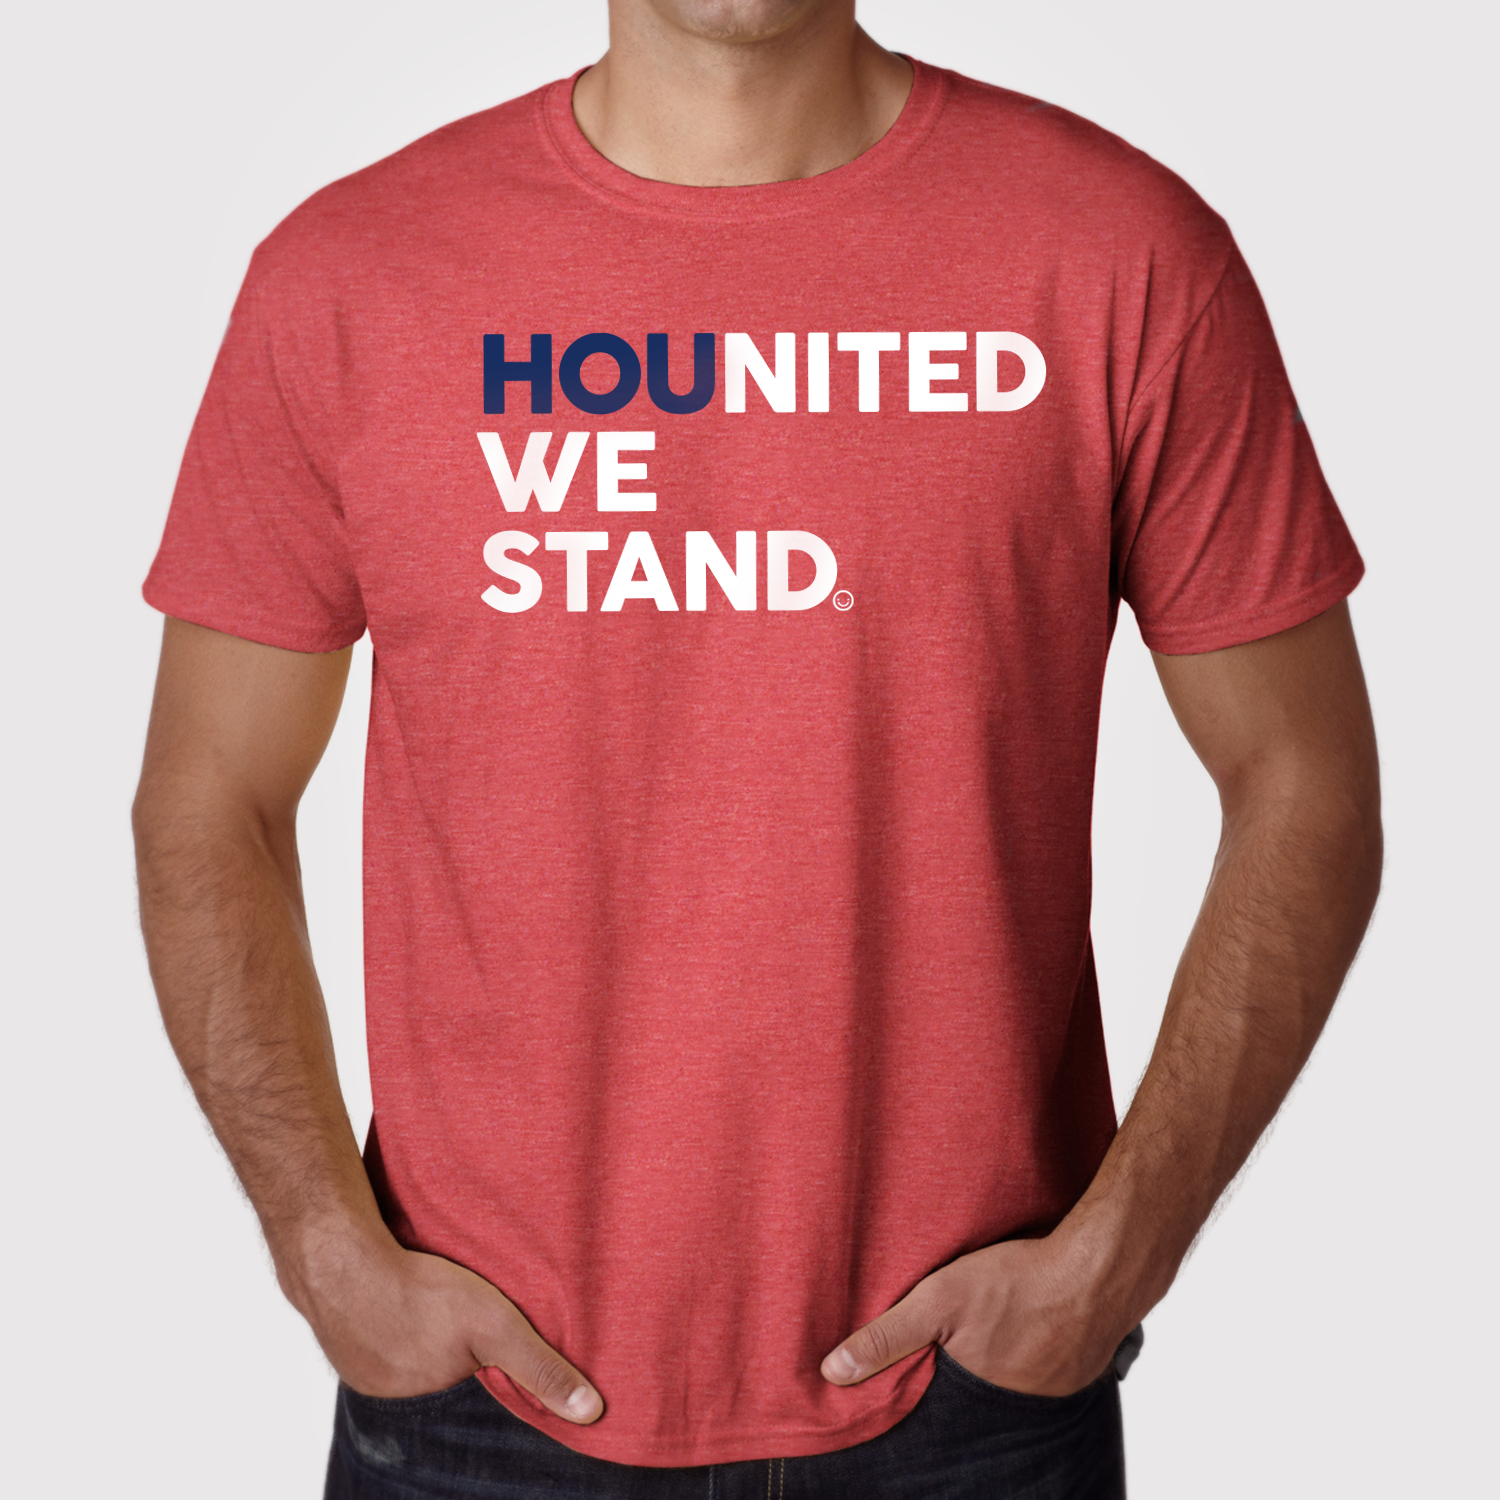 HappyBombs-HounitedWeStand-Red-Mens.png